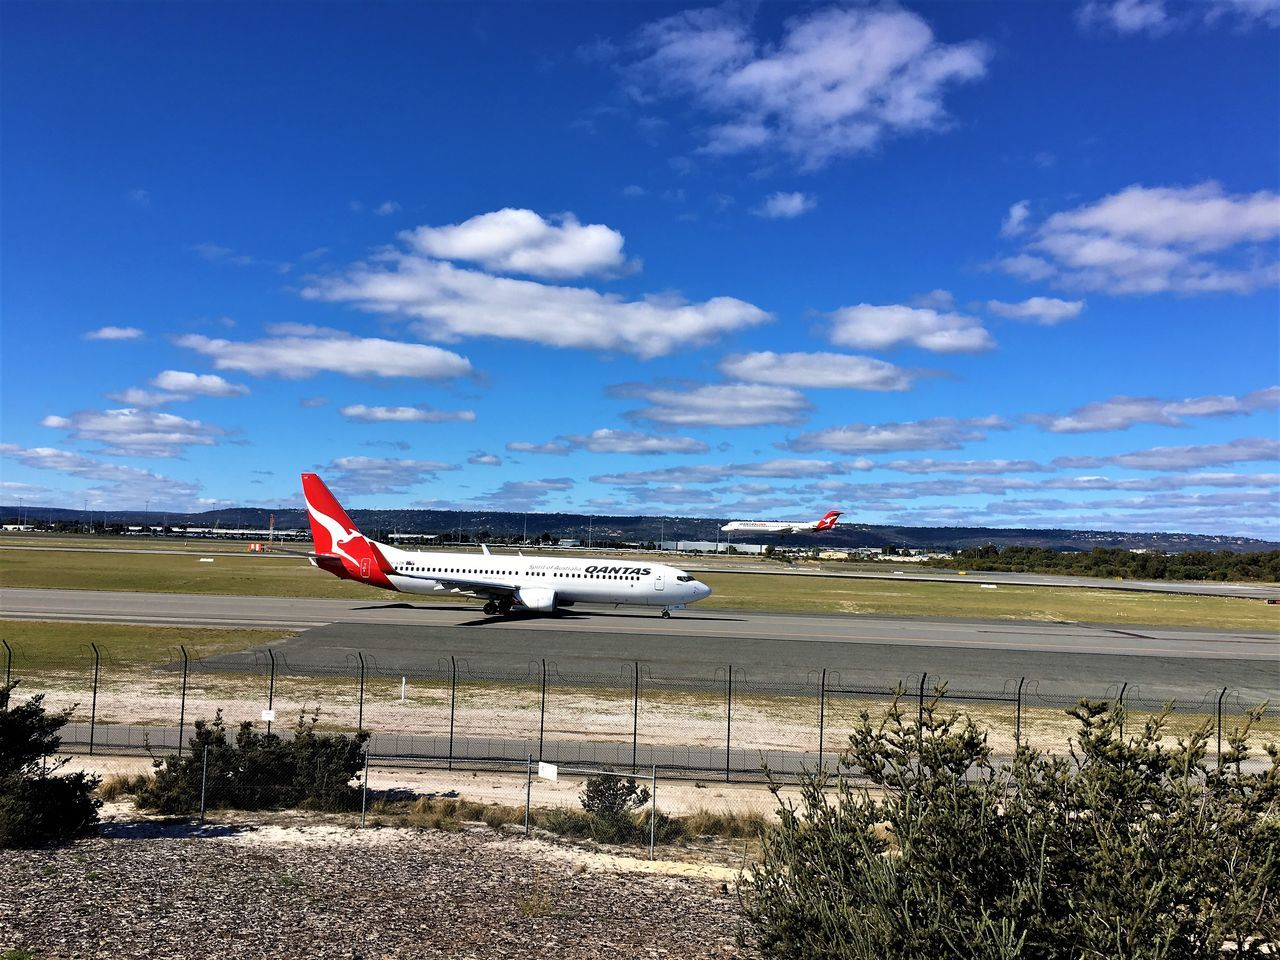 Airport Plane Enthusiast Photography Rear View Spotting Capture The Moment Landing Perth Airport Day Sky Airplane One Person Air Vehicle Plane Spotting Flying Outdoors Cloud - Sky Real People Australia People Transportation Hobby Hobbyphotography Quantas